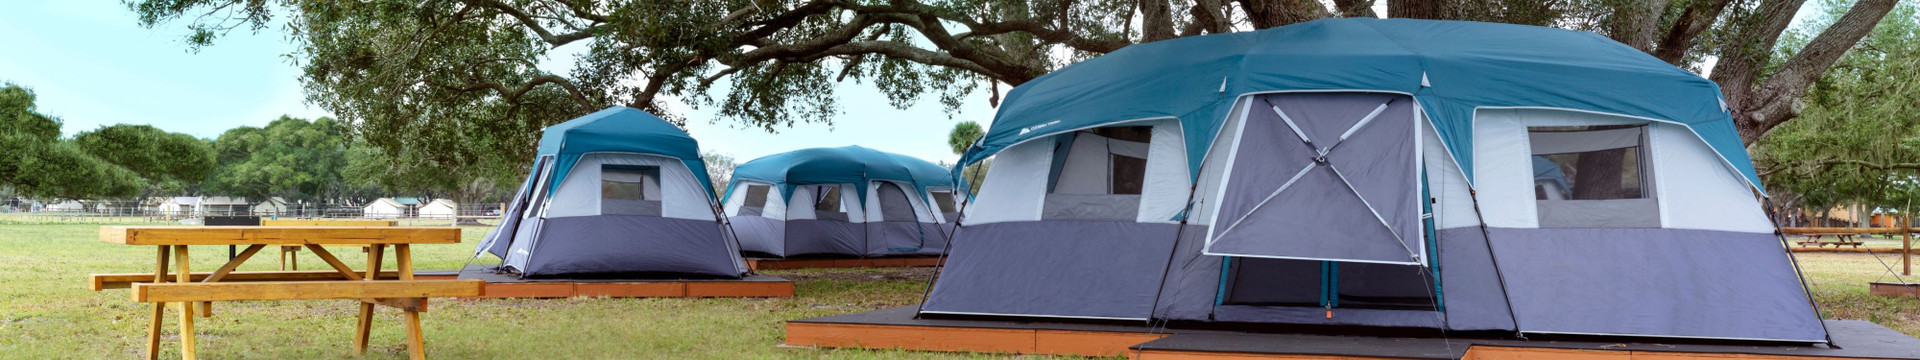 Camping tents - Westgate River Ranch